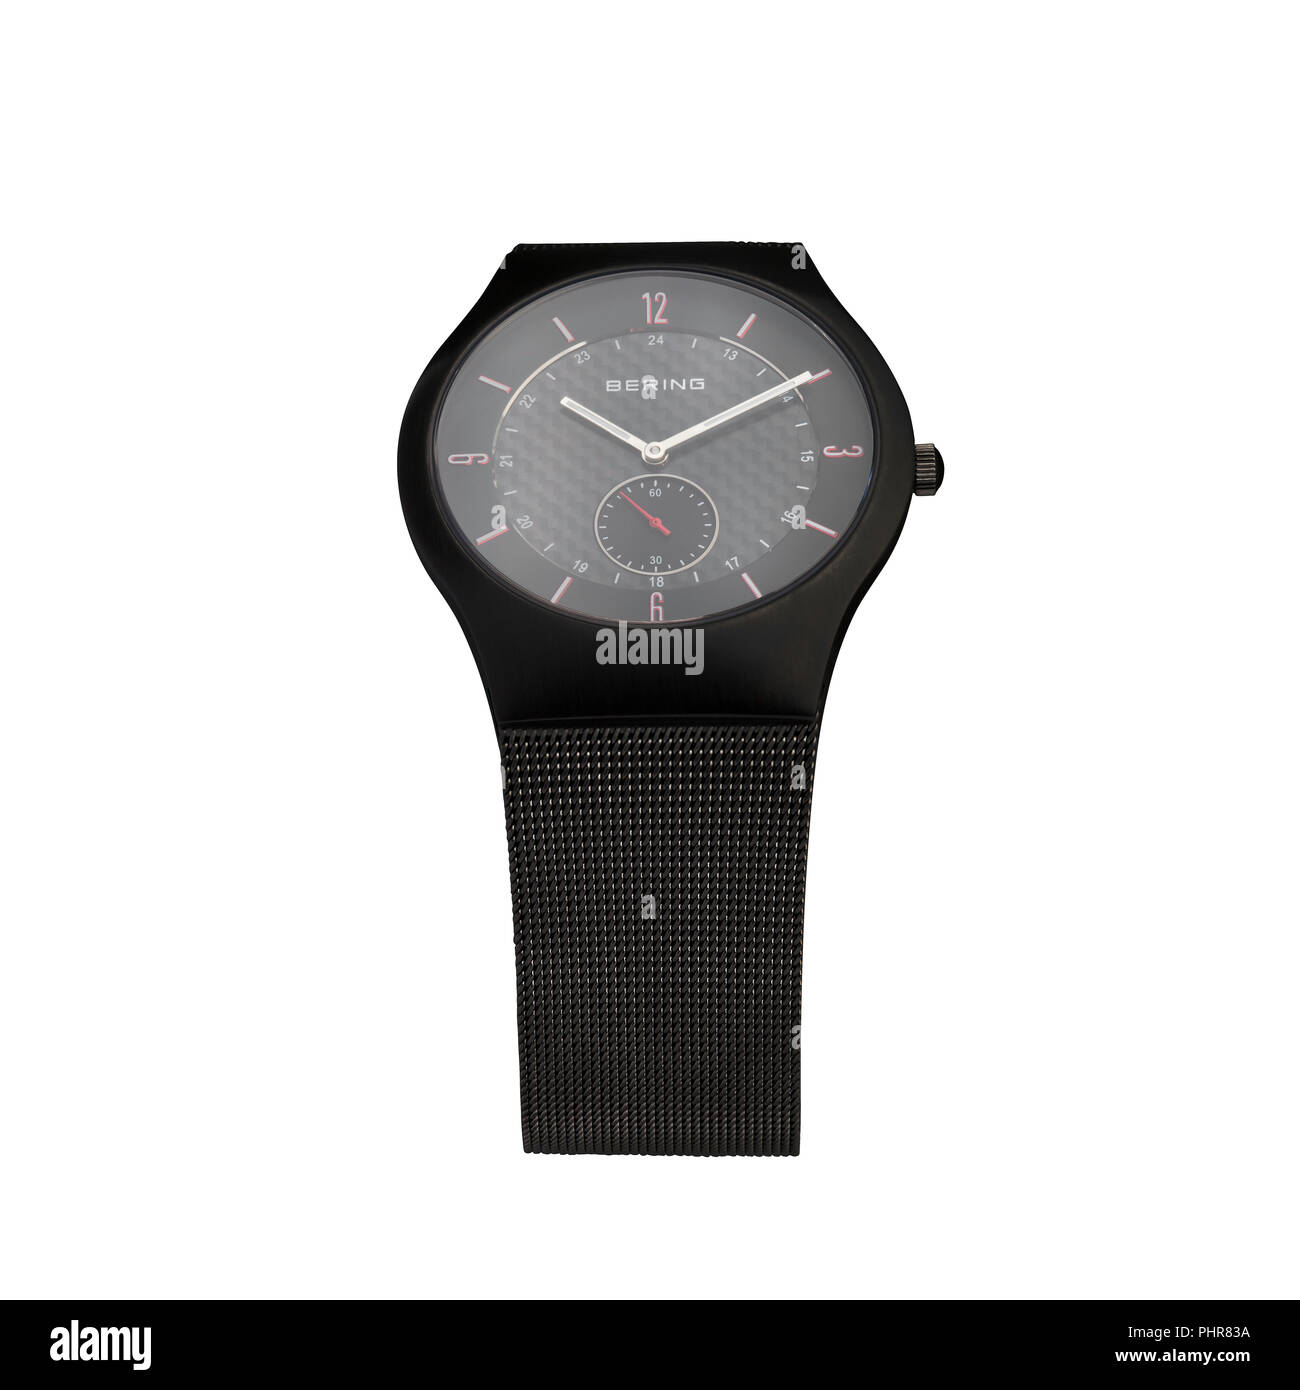 watches  advertising product photography - Stock Image